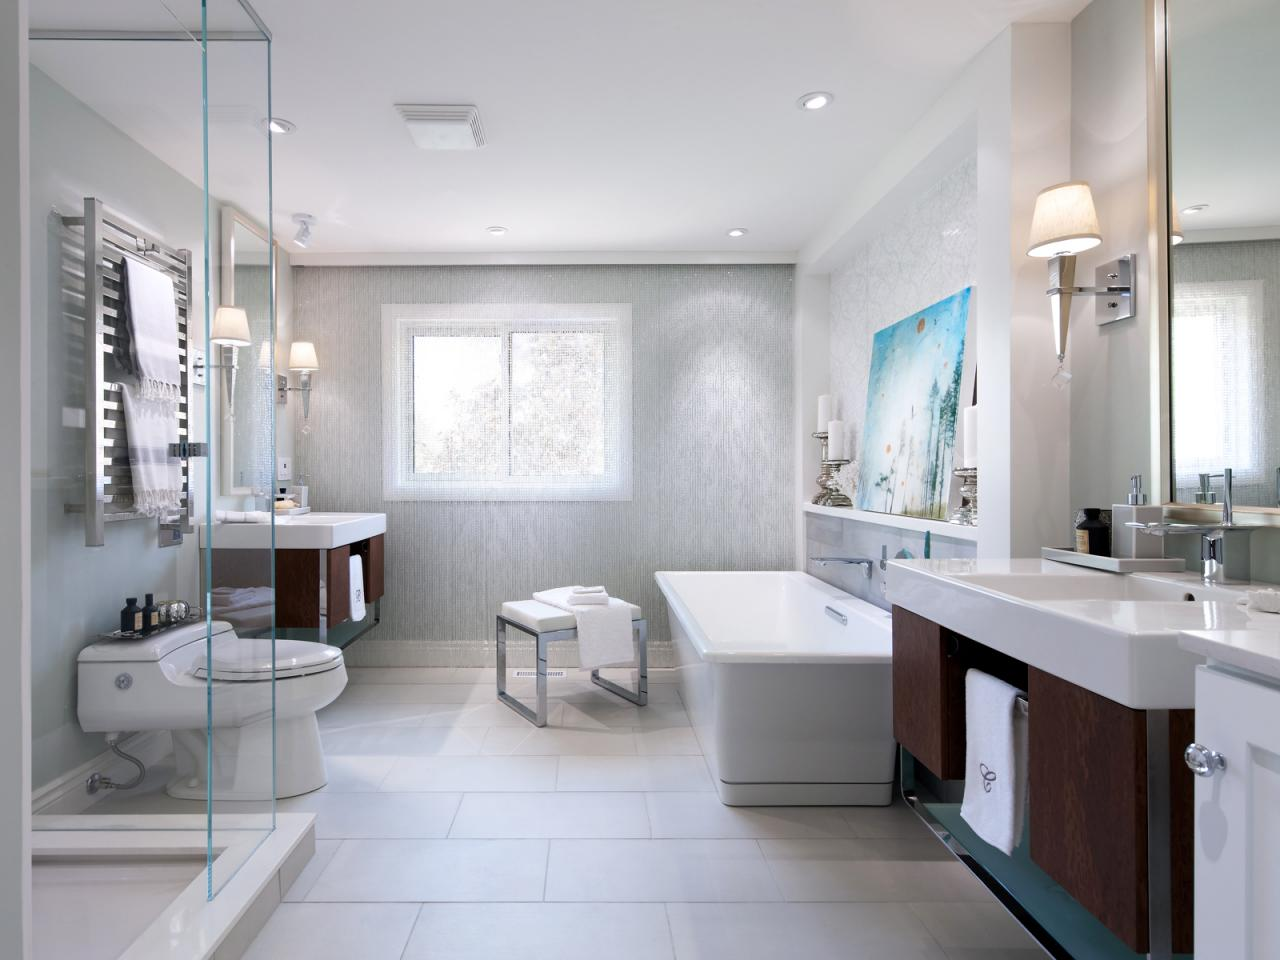 Walk in tub designs pictures ideas tips from hgtv hgtv - White bathroom ideas photo gallery ...